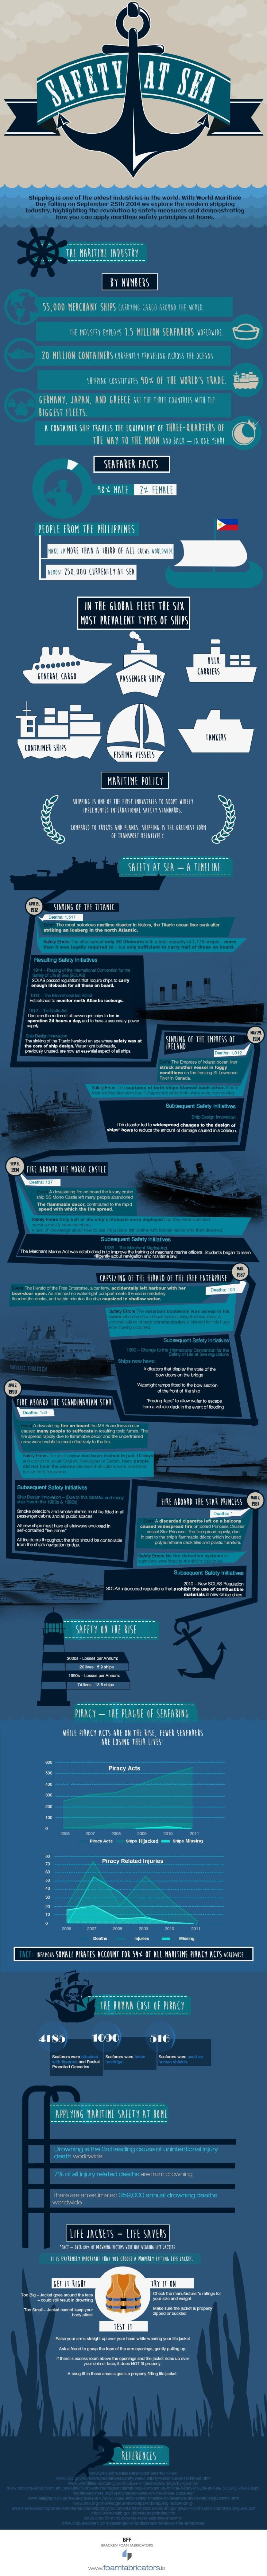 Image for Safety at Sea Infographic